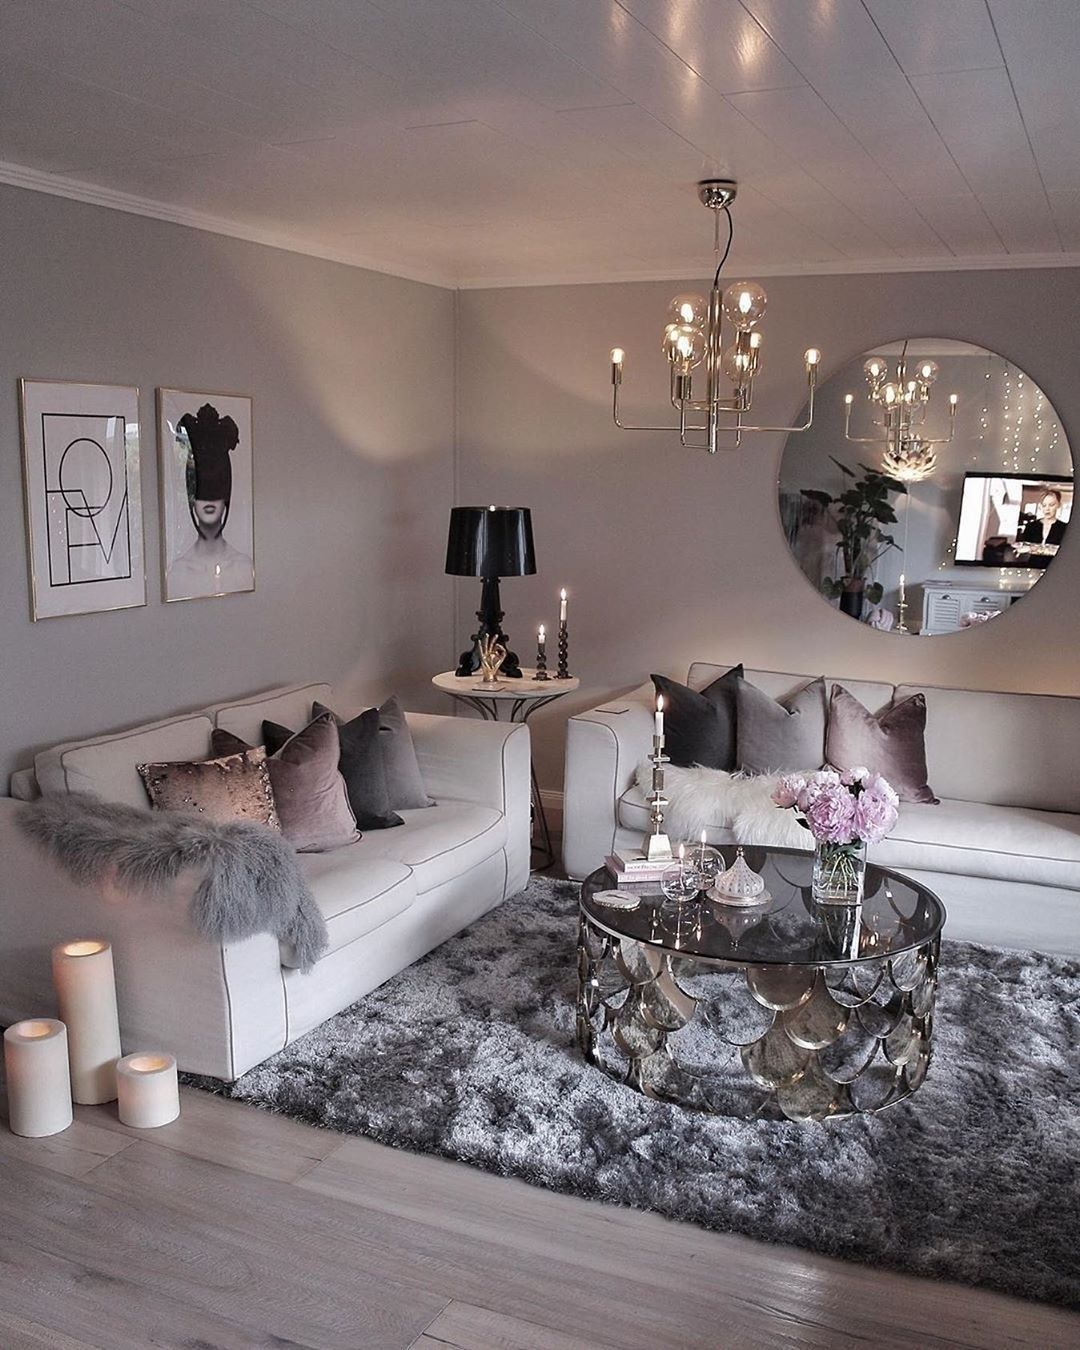 78 Models Very Snug And Practical Decoration Ideas For Small Living Room Deco In 2020 Living Room Decor Cozy Living Room Decor Apartment Small Living Room Decor #small #glam #living #room